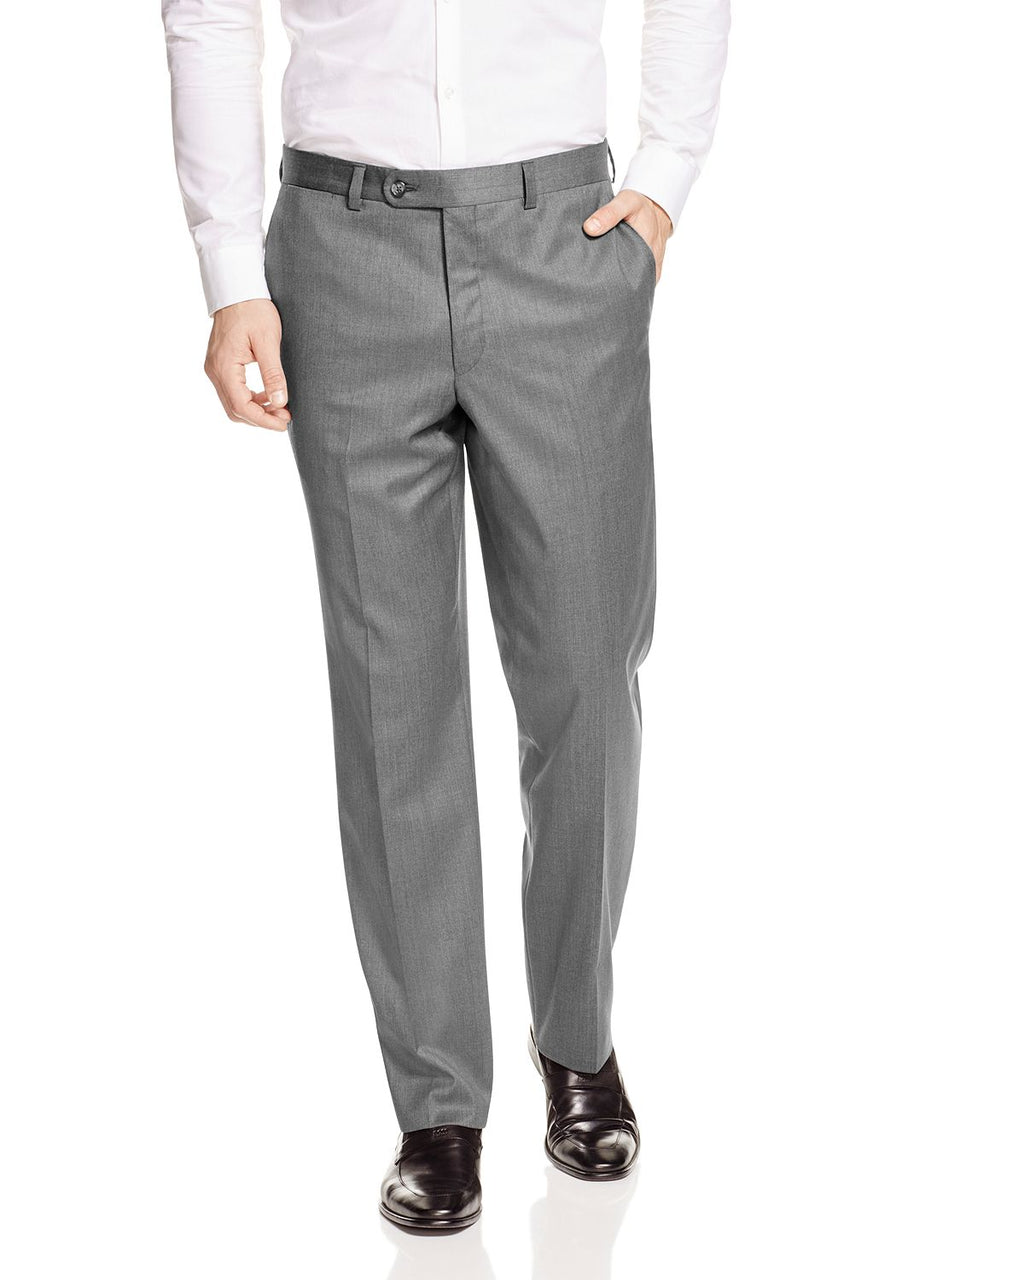 KOLT • Light Grey • Modern Fit Trouser • Loro Piana